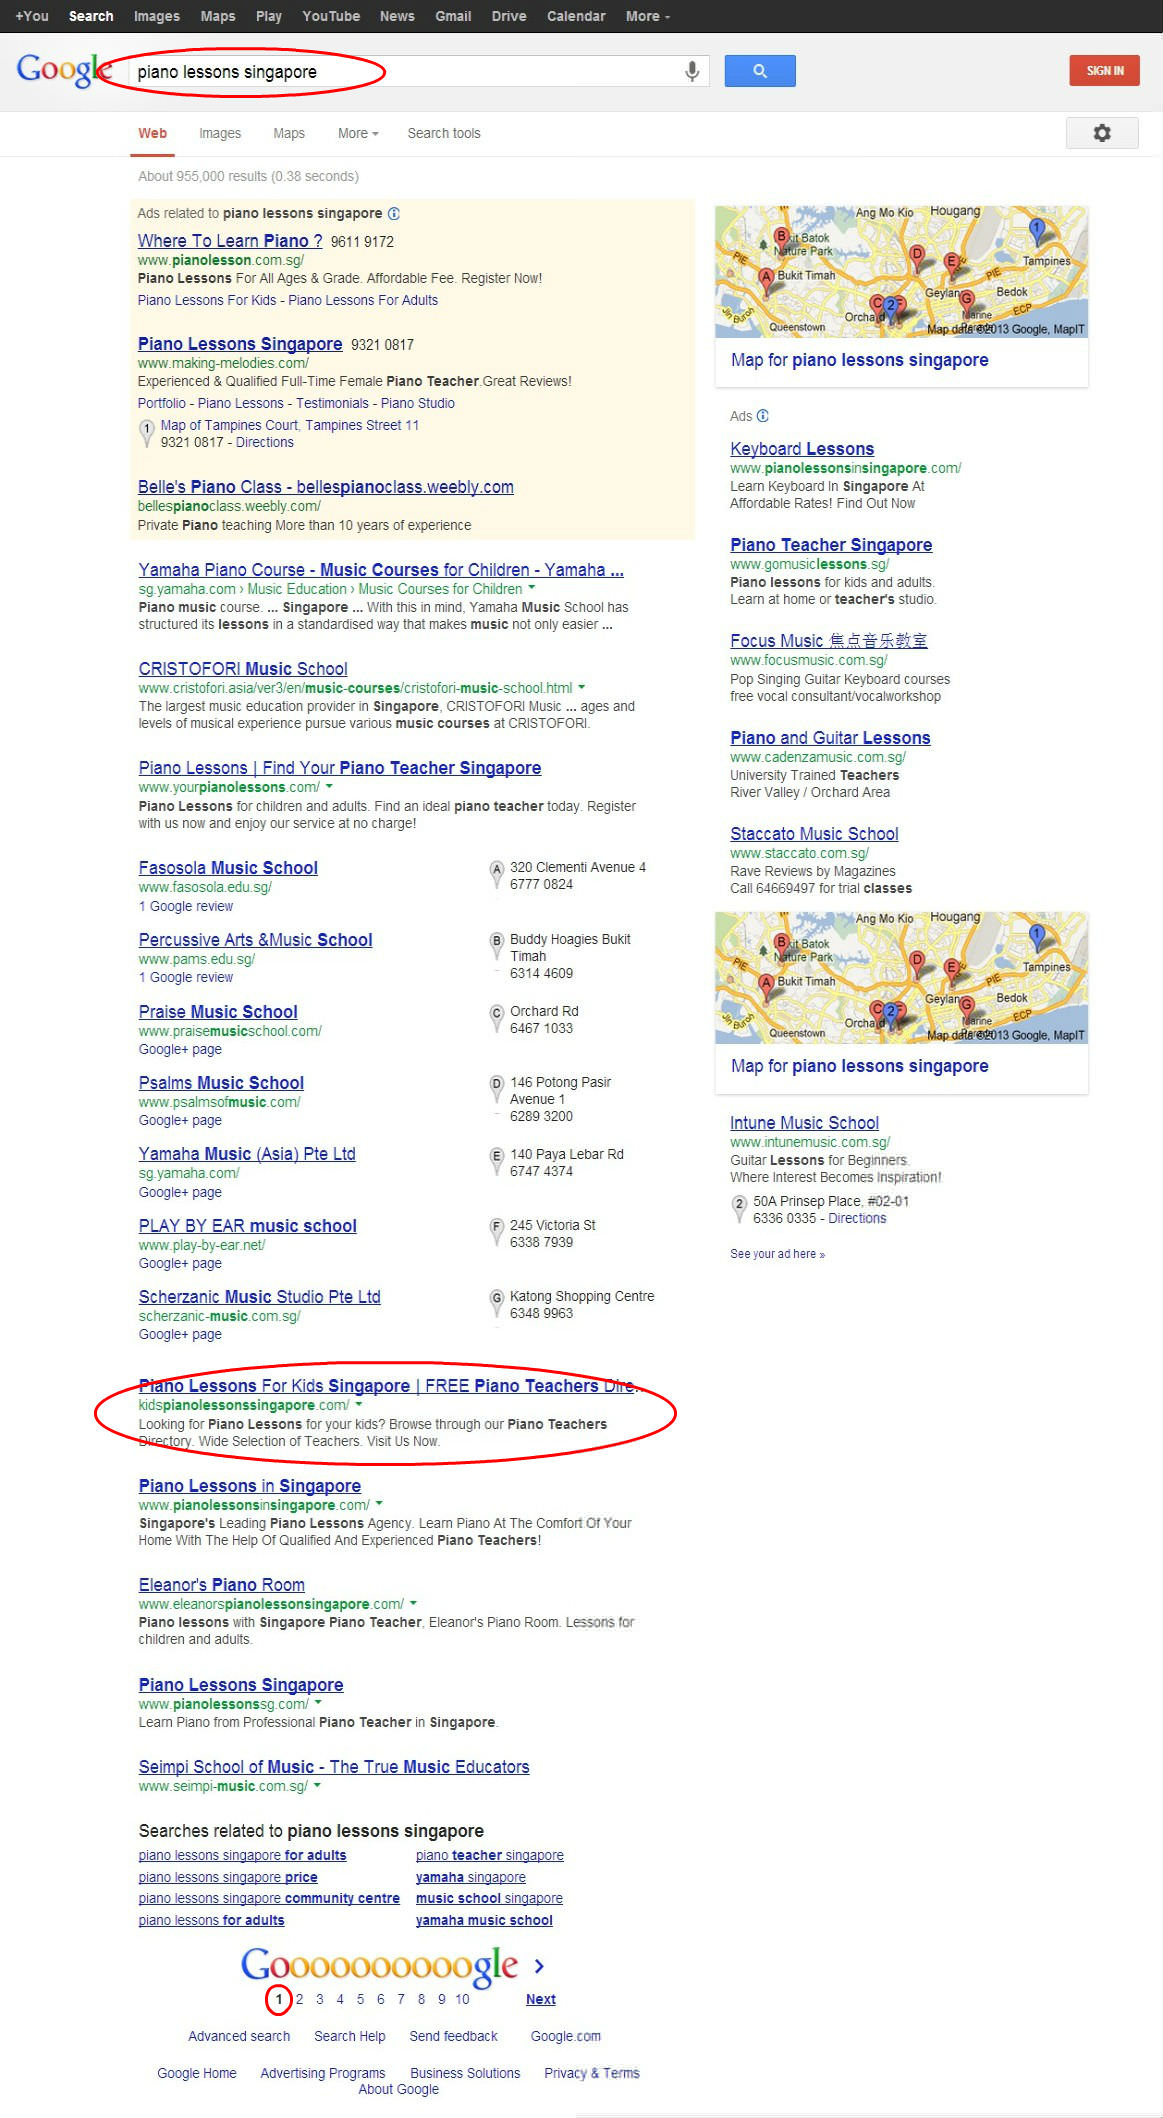 SEO Ranking Results in Serp